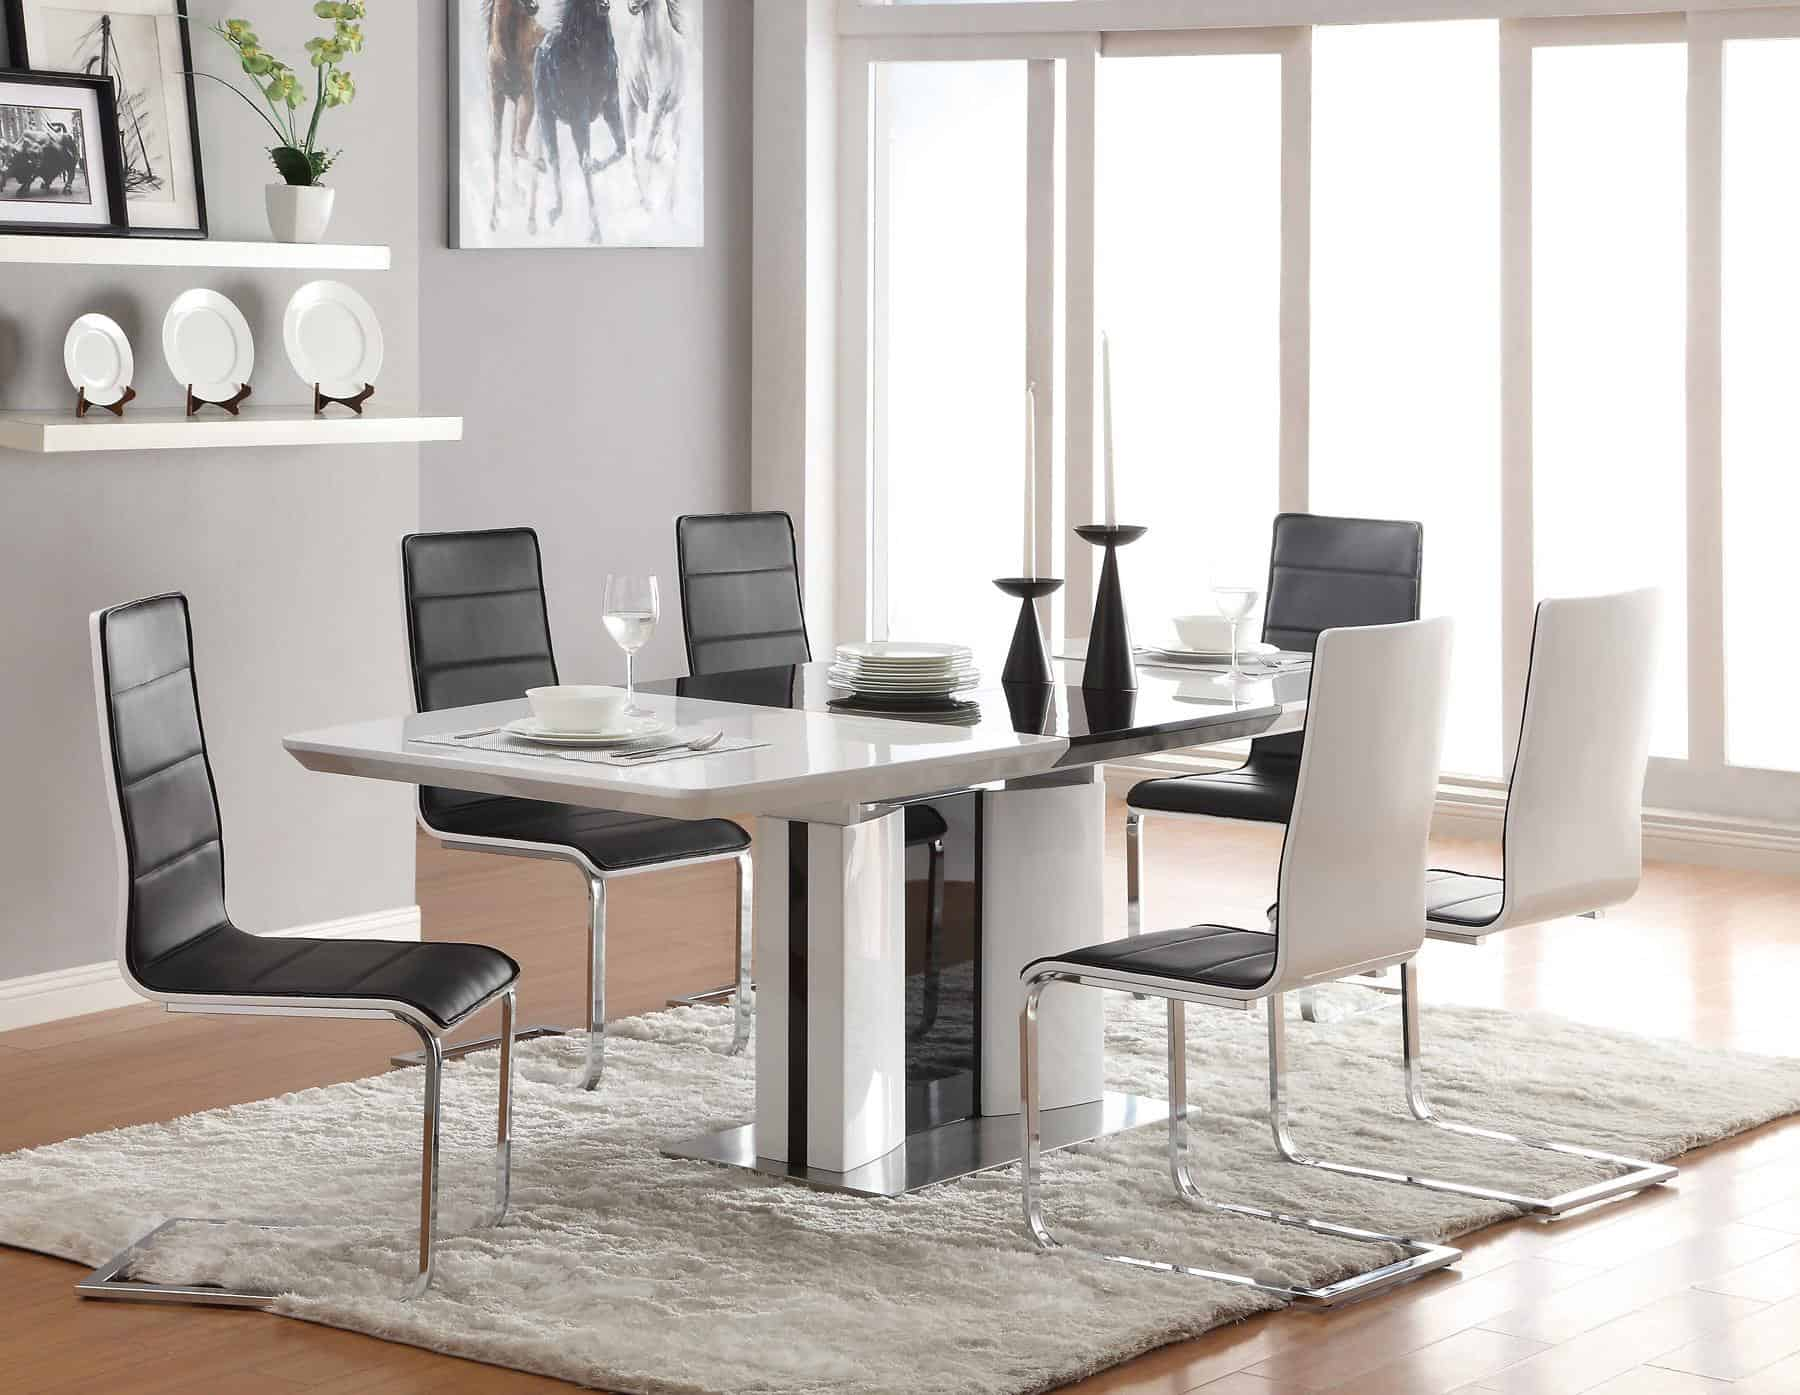 Awesome-Design-Of-The-Dining-Room-Areas-With-White-Wall-And-Grey-Rugs-And-White-And-Blak-Modern-Dining-Room-Chairs